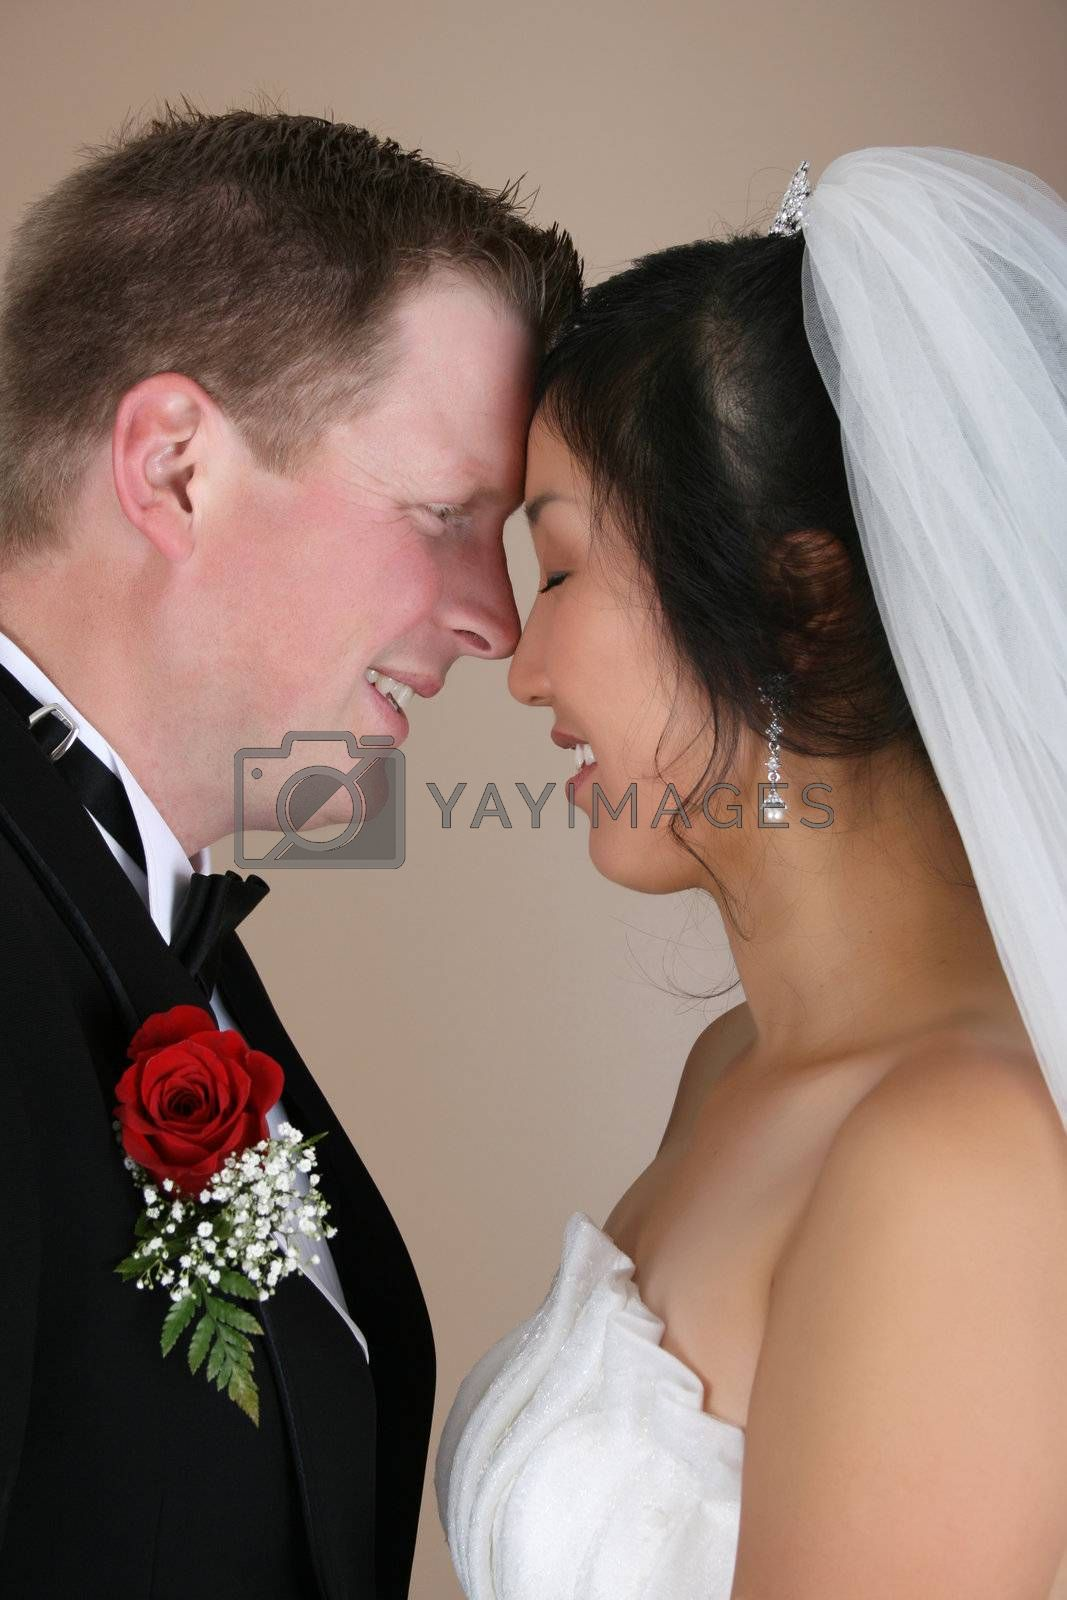 Bridal couple with faces close together